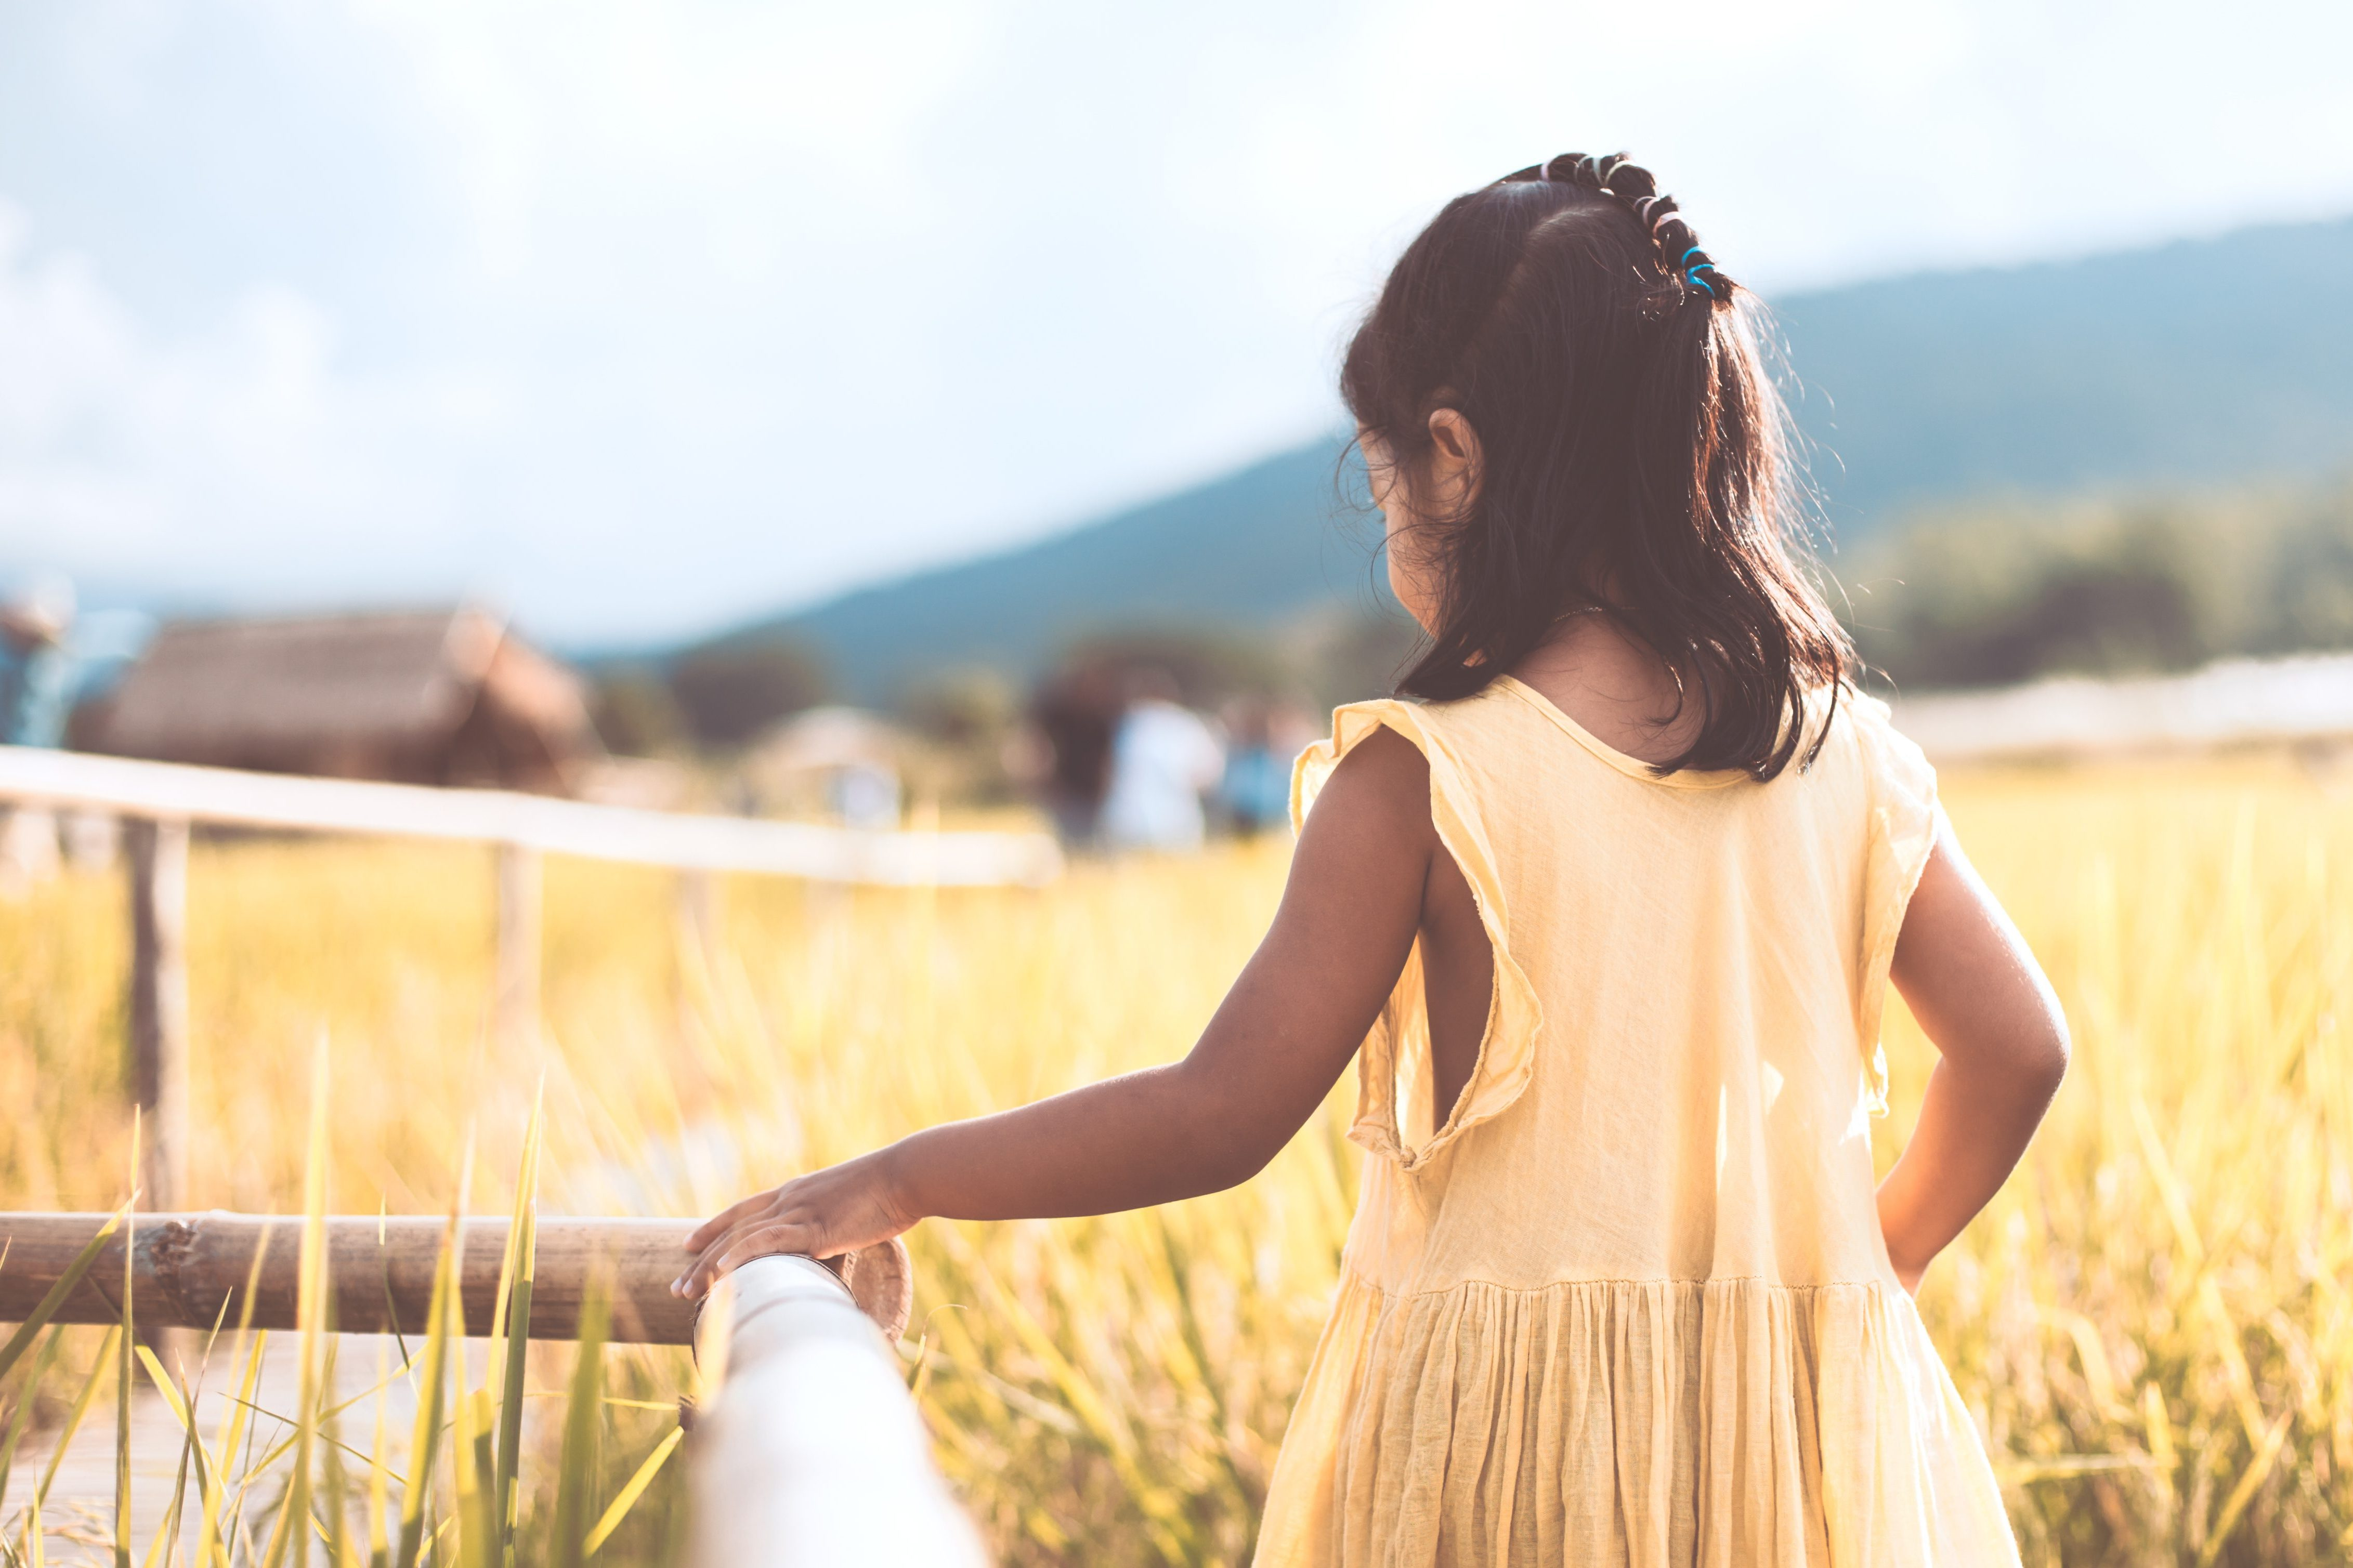 Back view of little child girl walking in bamboo walkway at the cornfield